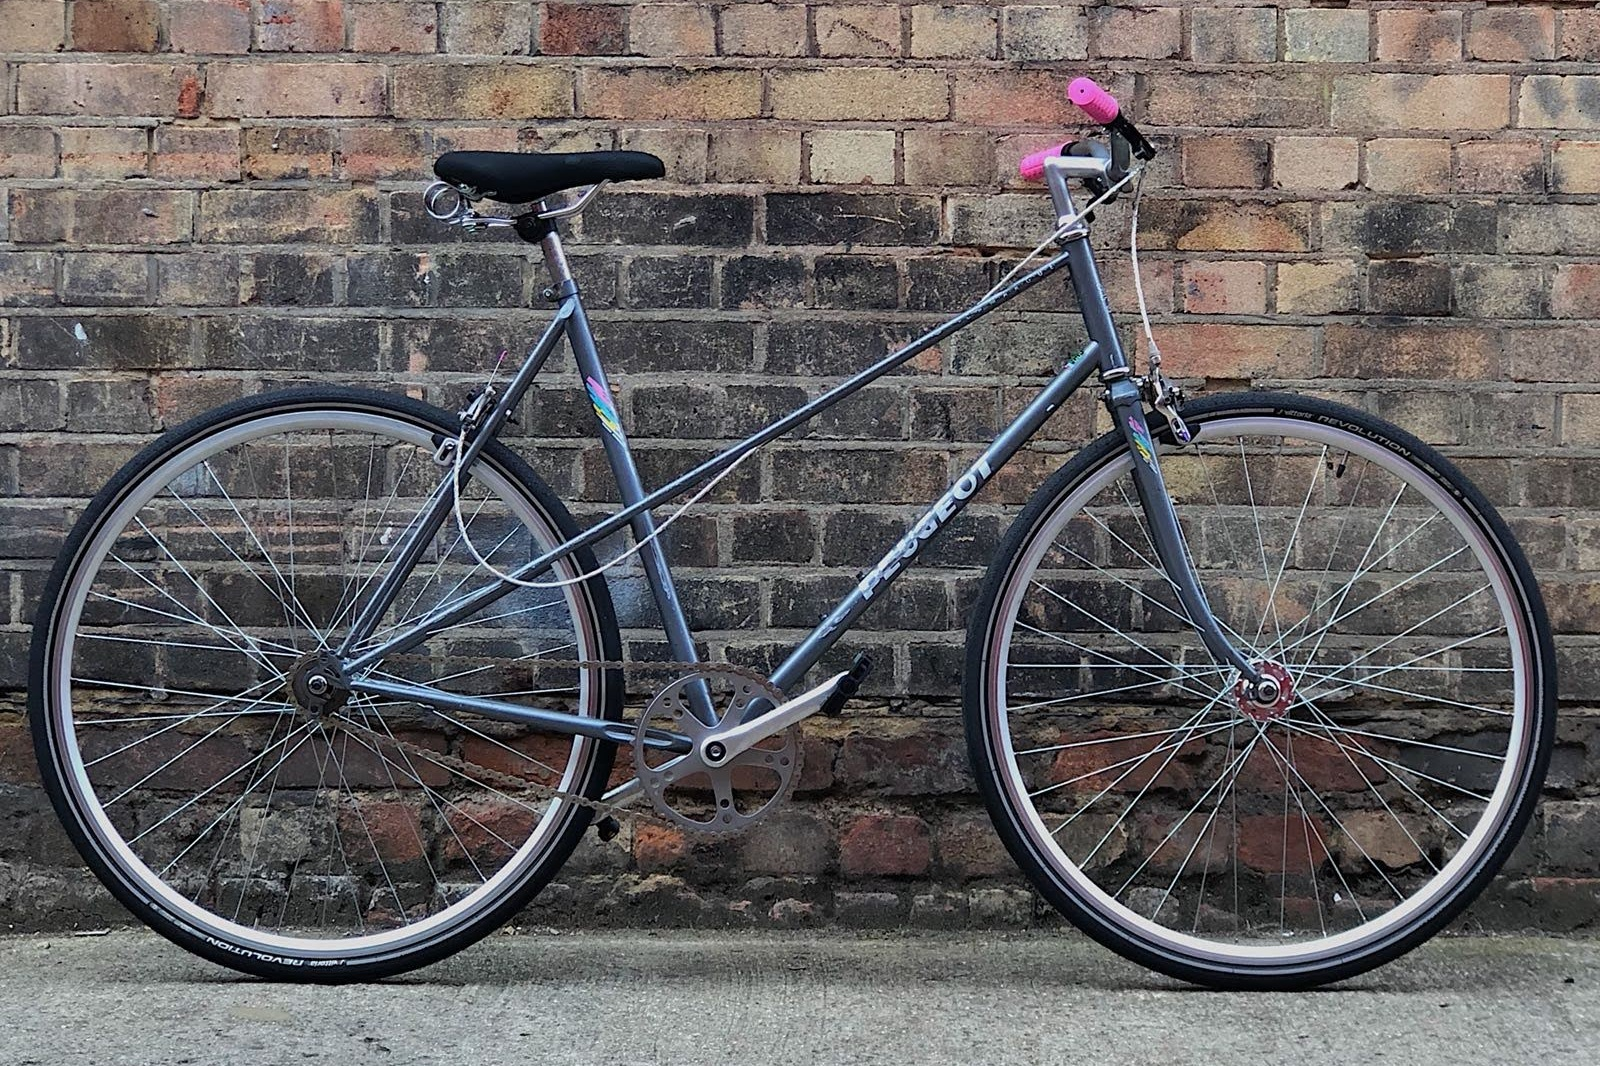 used-road-bikes-london.jpg